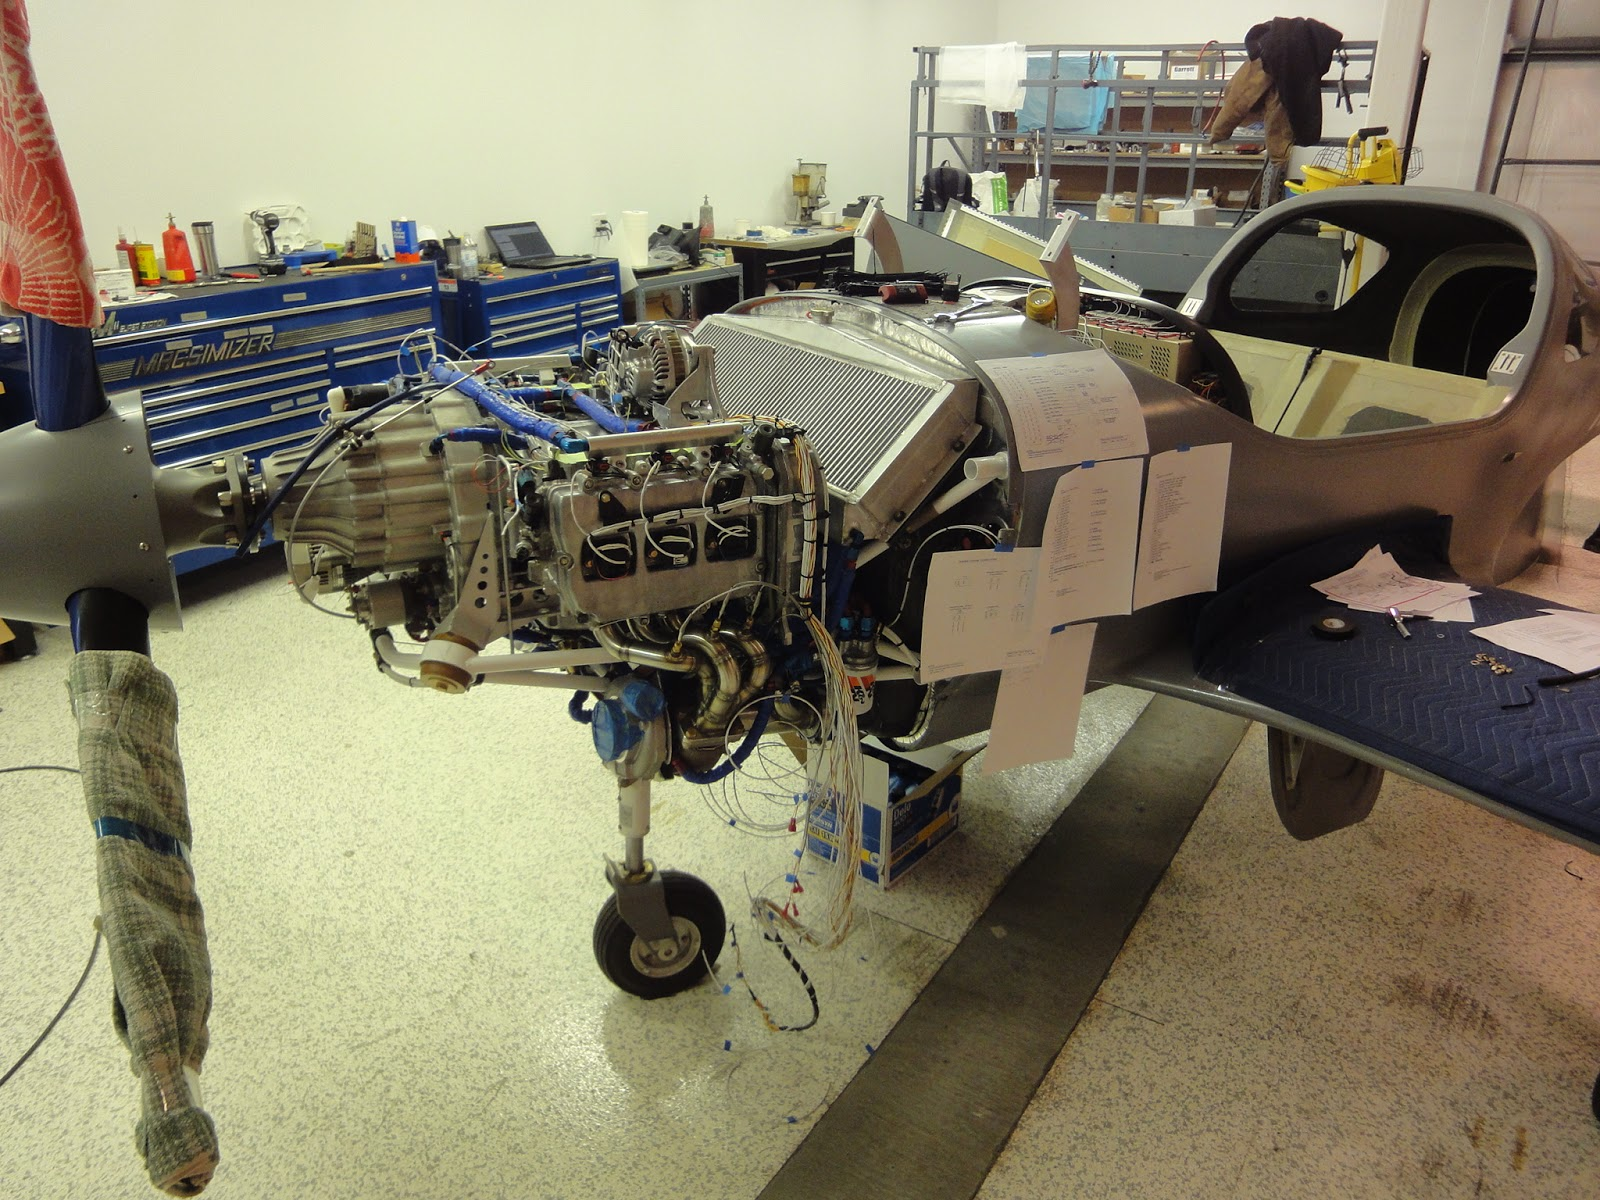 Lancair Legacy N916wb Aircraft Engine Wiring Diagrams And Connector Pinout Tables Await Mondays Efforts